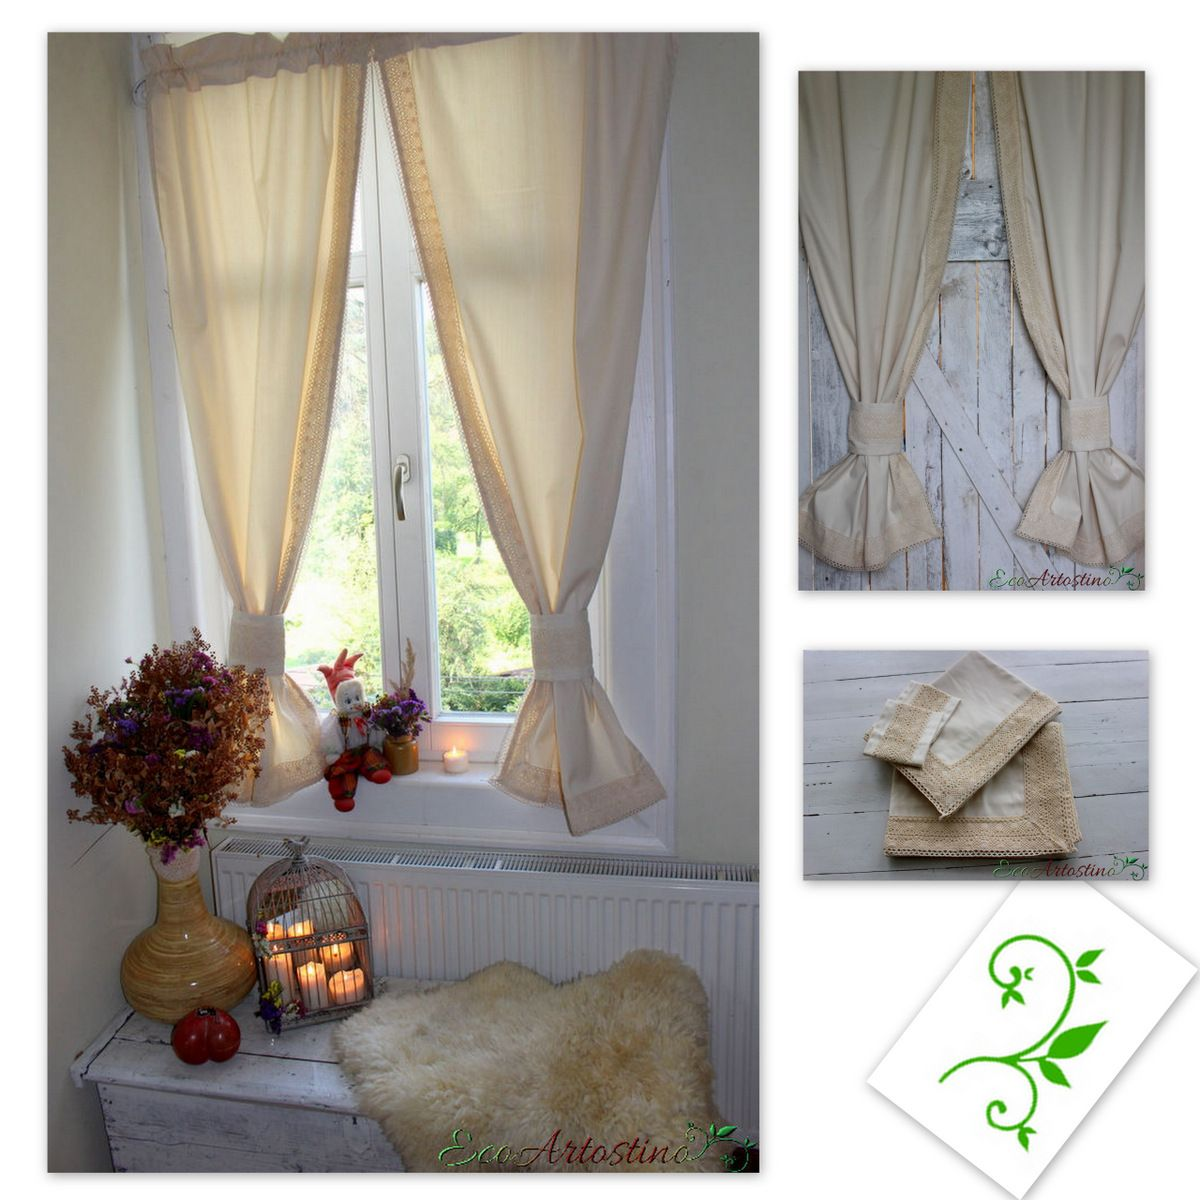 Oryginal natural ecru curtains. Decorated with cotton lace. Beautiful window decoration. Perfect for rustic, vintage, chabby chic and cottage  interior. Made of natural cotton blend fabric with linen and elana